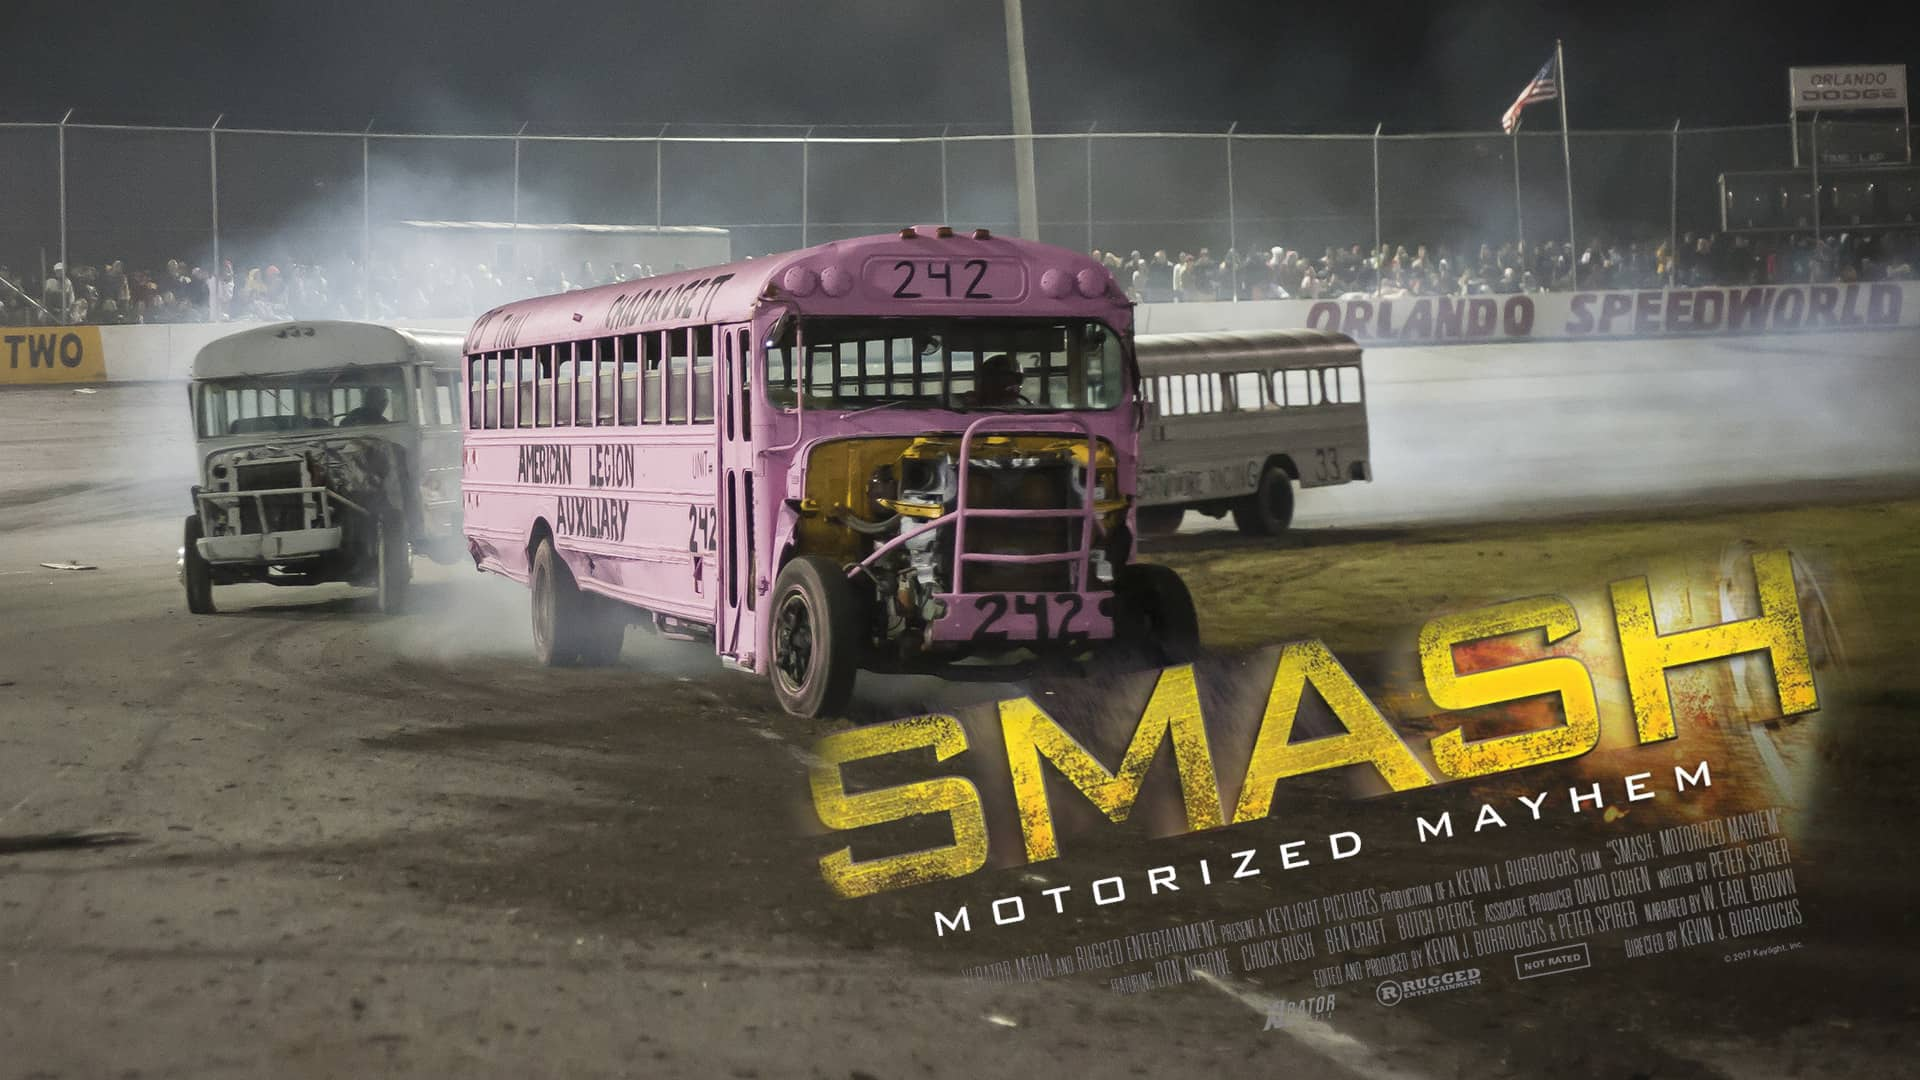 'Smash: Motorized Mayhem' is an inept promo made for its stars